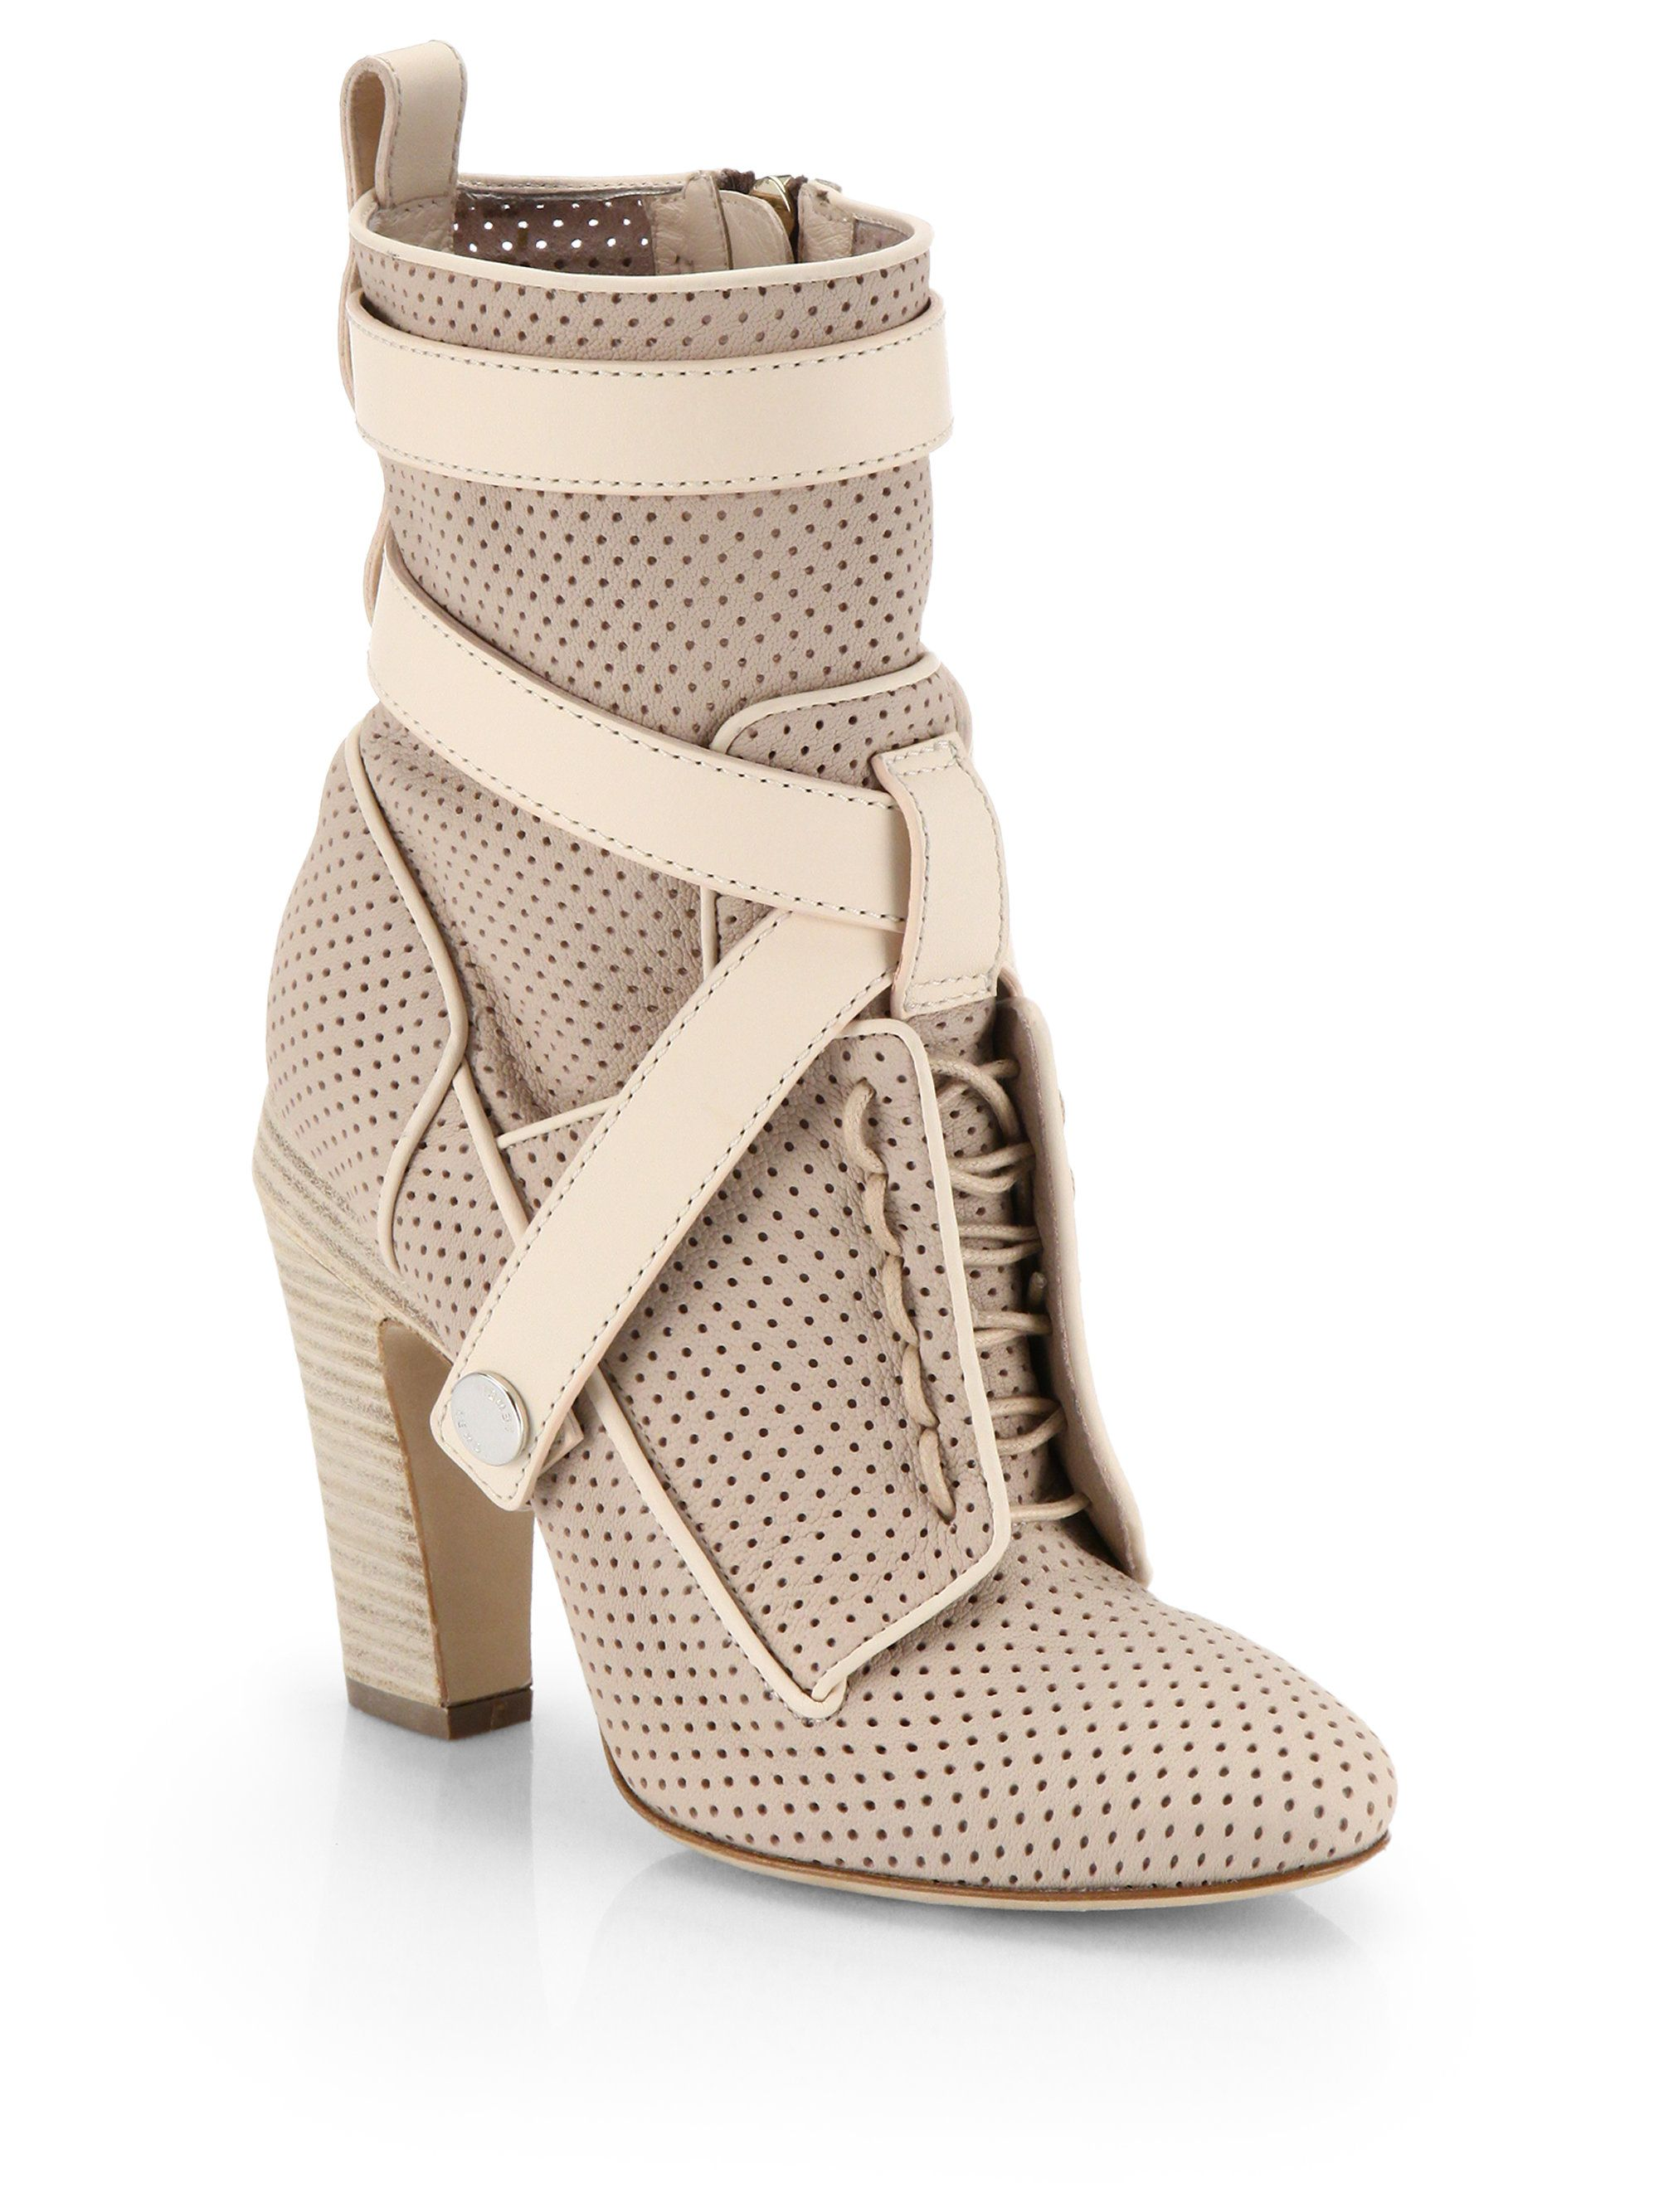 Fendi lace-up perforated boots discount best seller visit new cheap online online sale online free shipping cheapest price MgUxYOW